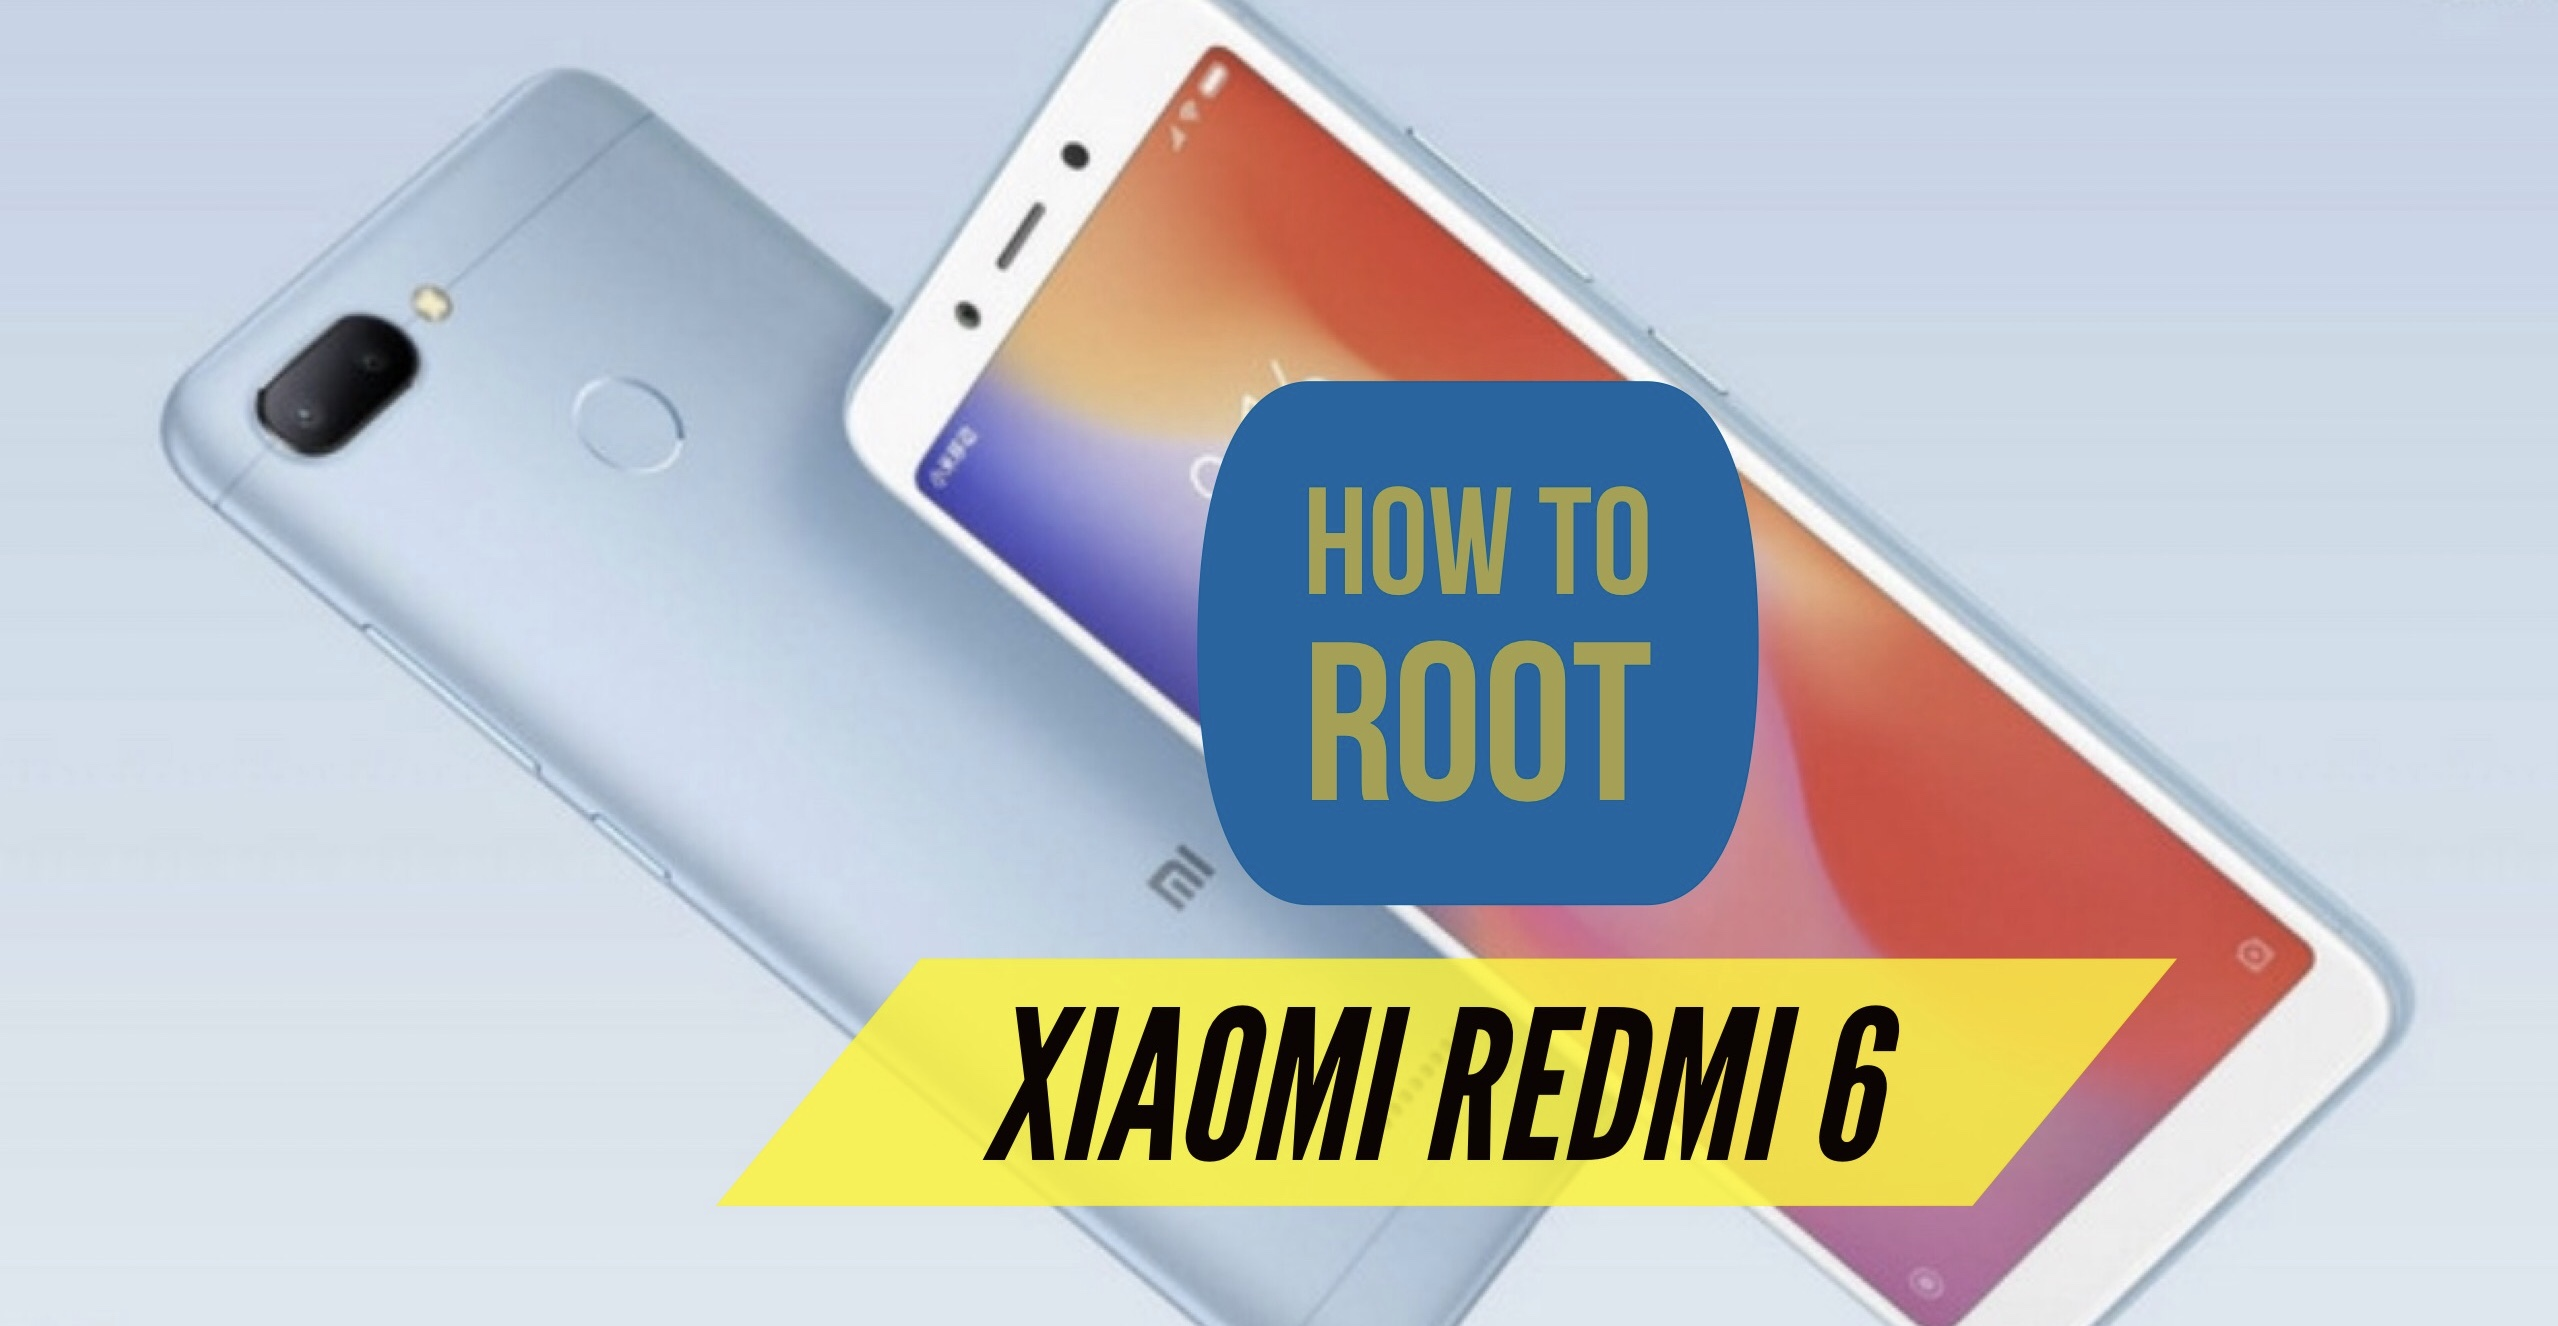 How to Root Xiaomi Redmi 6 [2018] with Three Different METHODS!